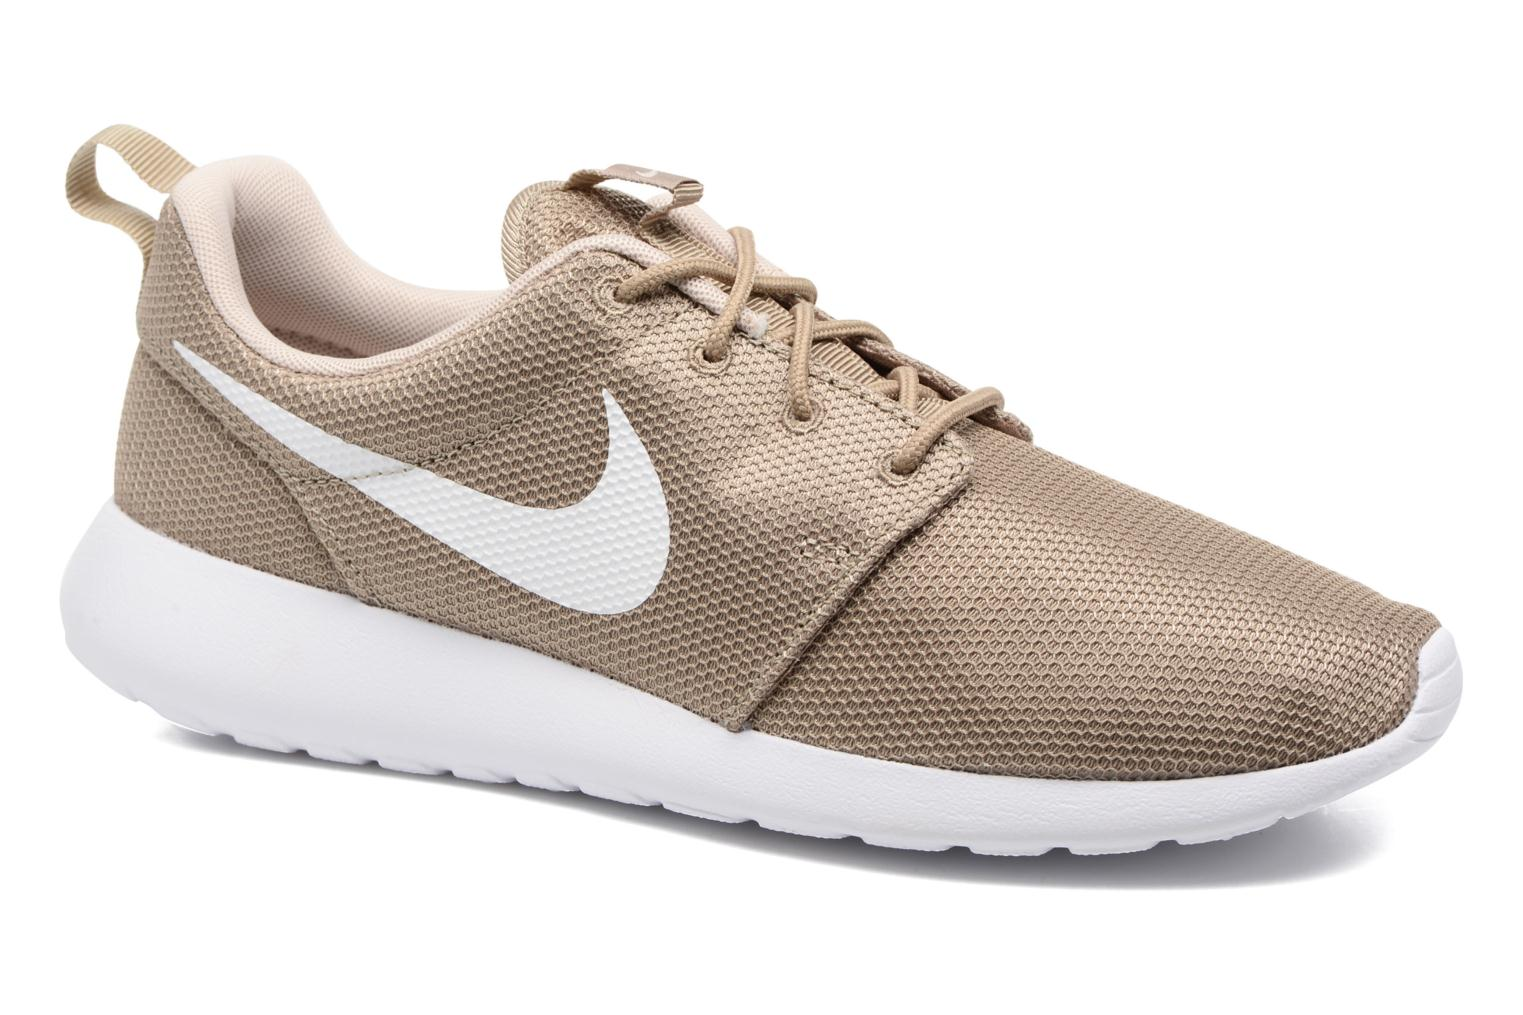 ff6383a3c95a ... Trainers Nike Nike Roshe One Beige detailed view Pair view ...